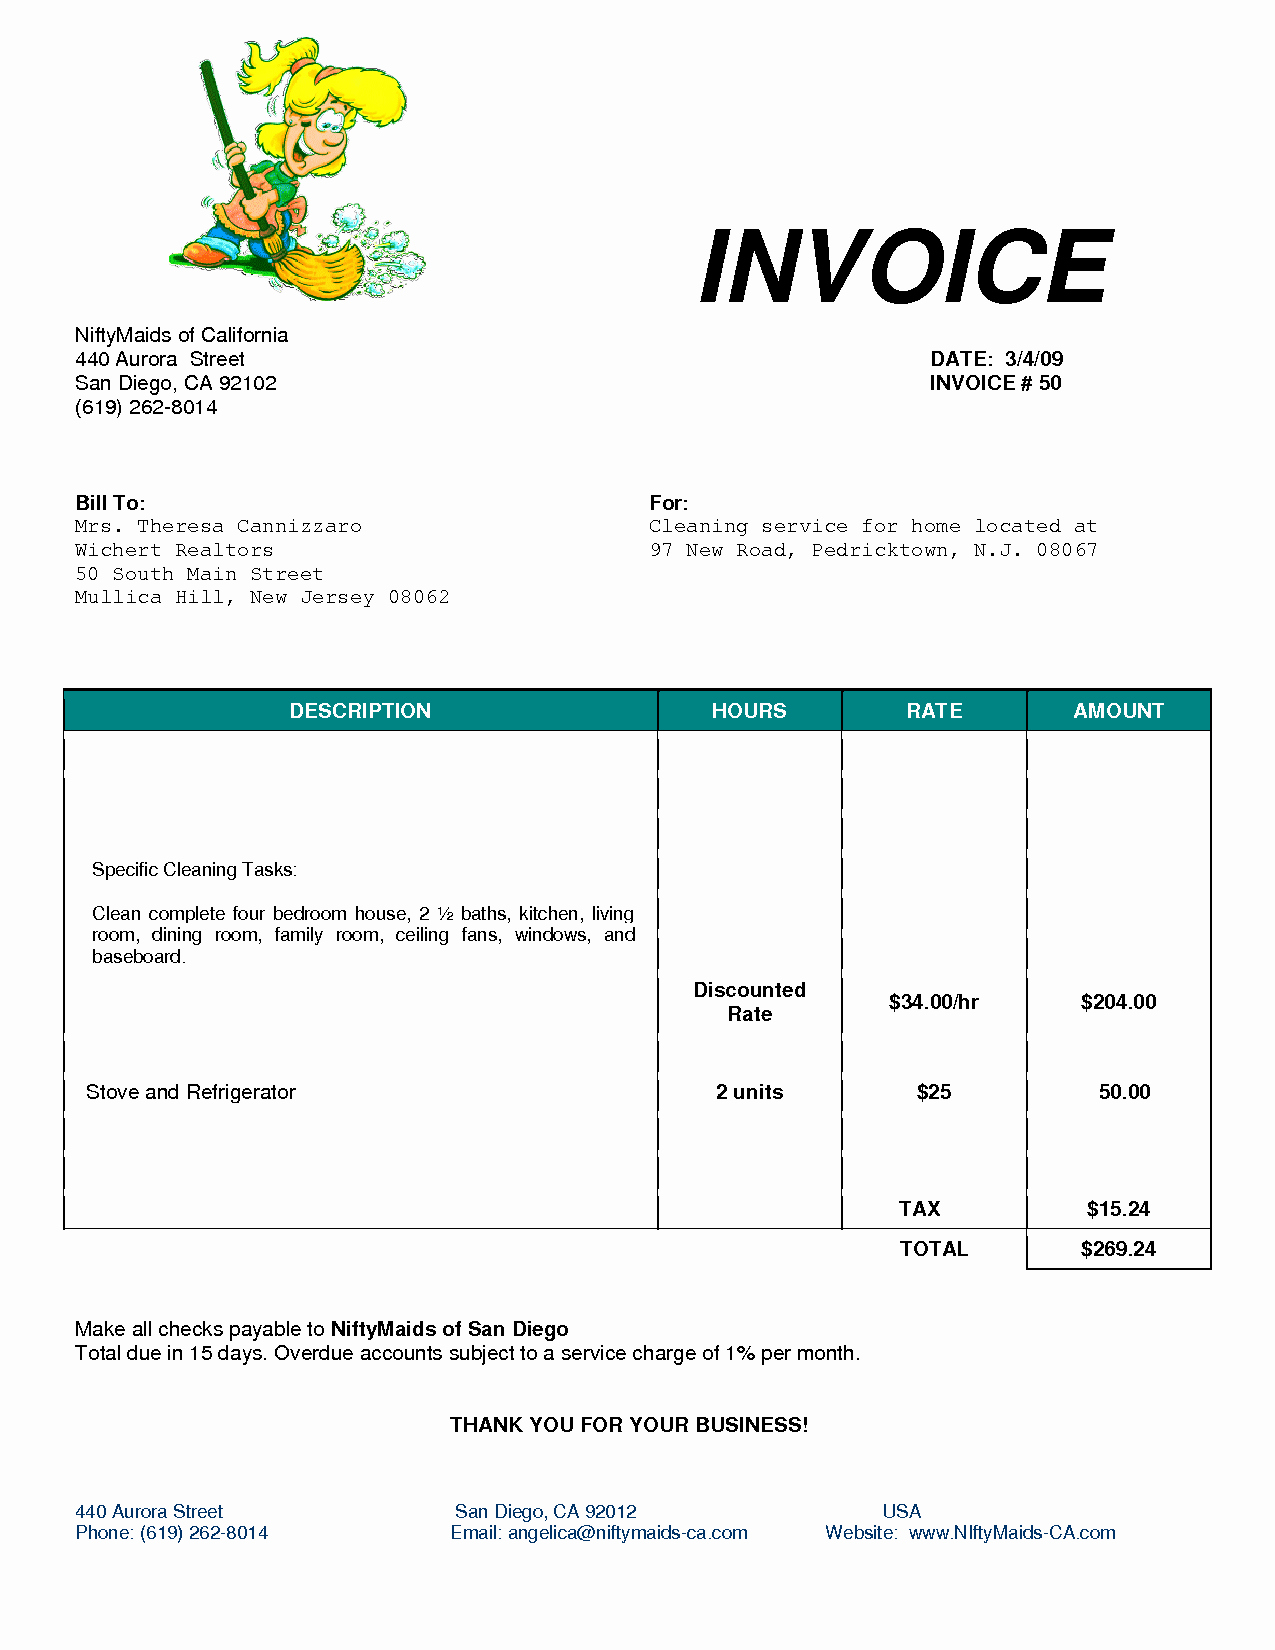 Invoice format In Word Elegant Cleaning Invoice Template Uk